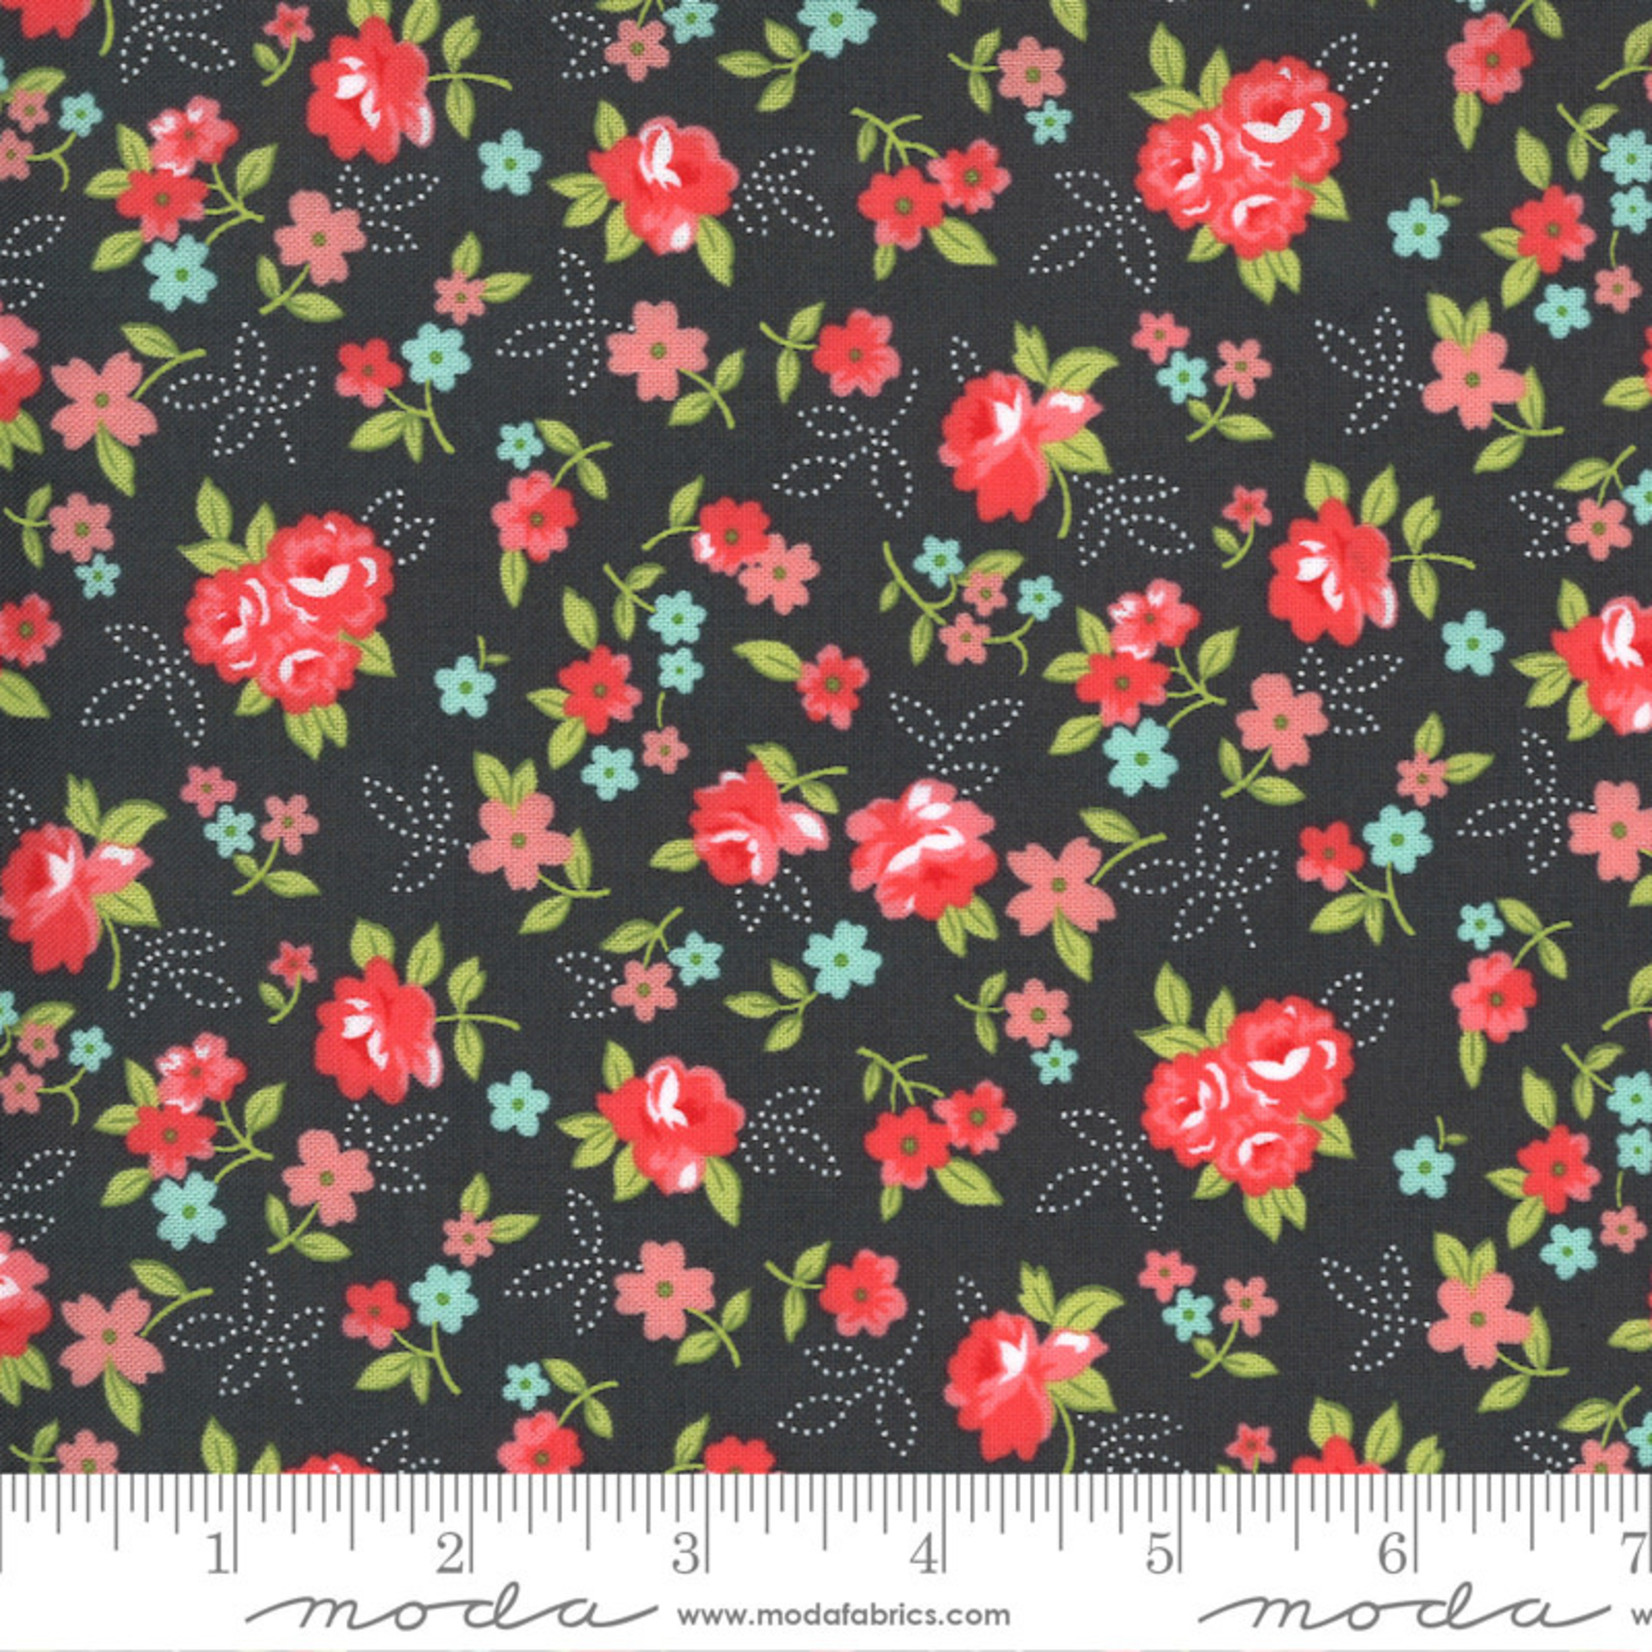 Bonnie & Camille Sunday Stroll, Little Floral, Grey 55222 18 $0.20 per cm or $20/m